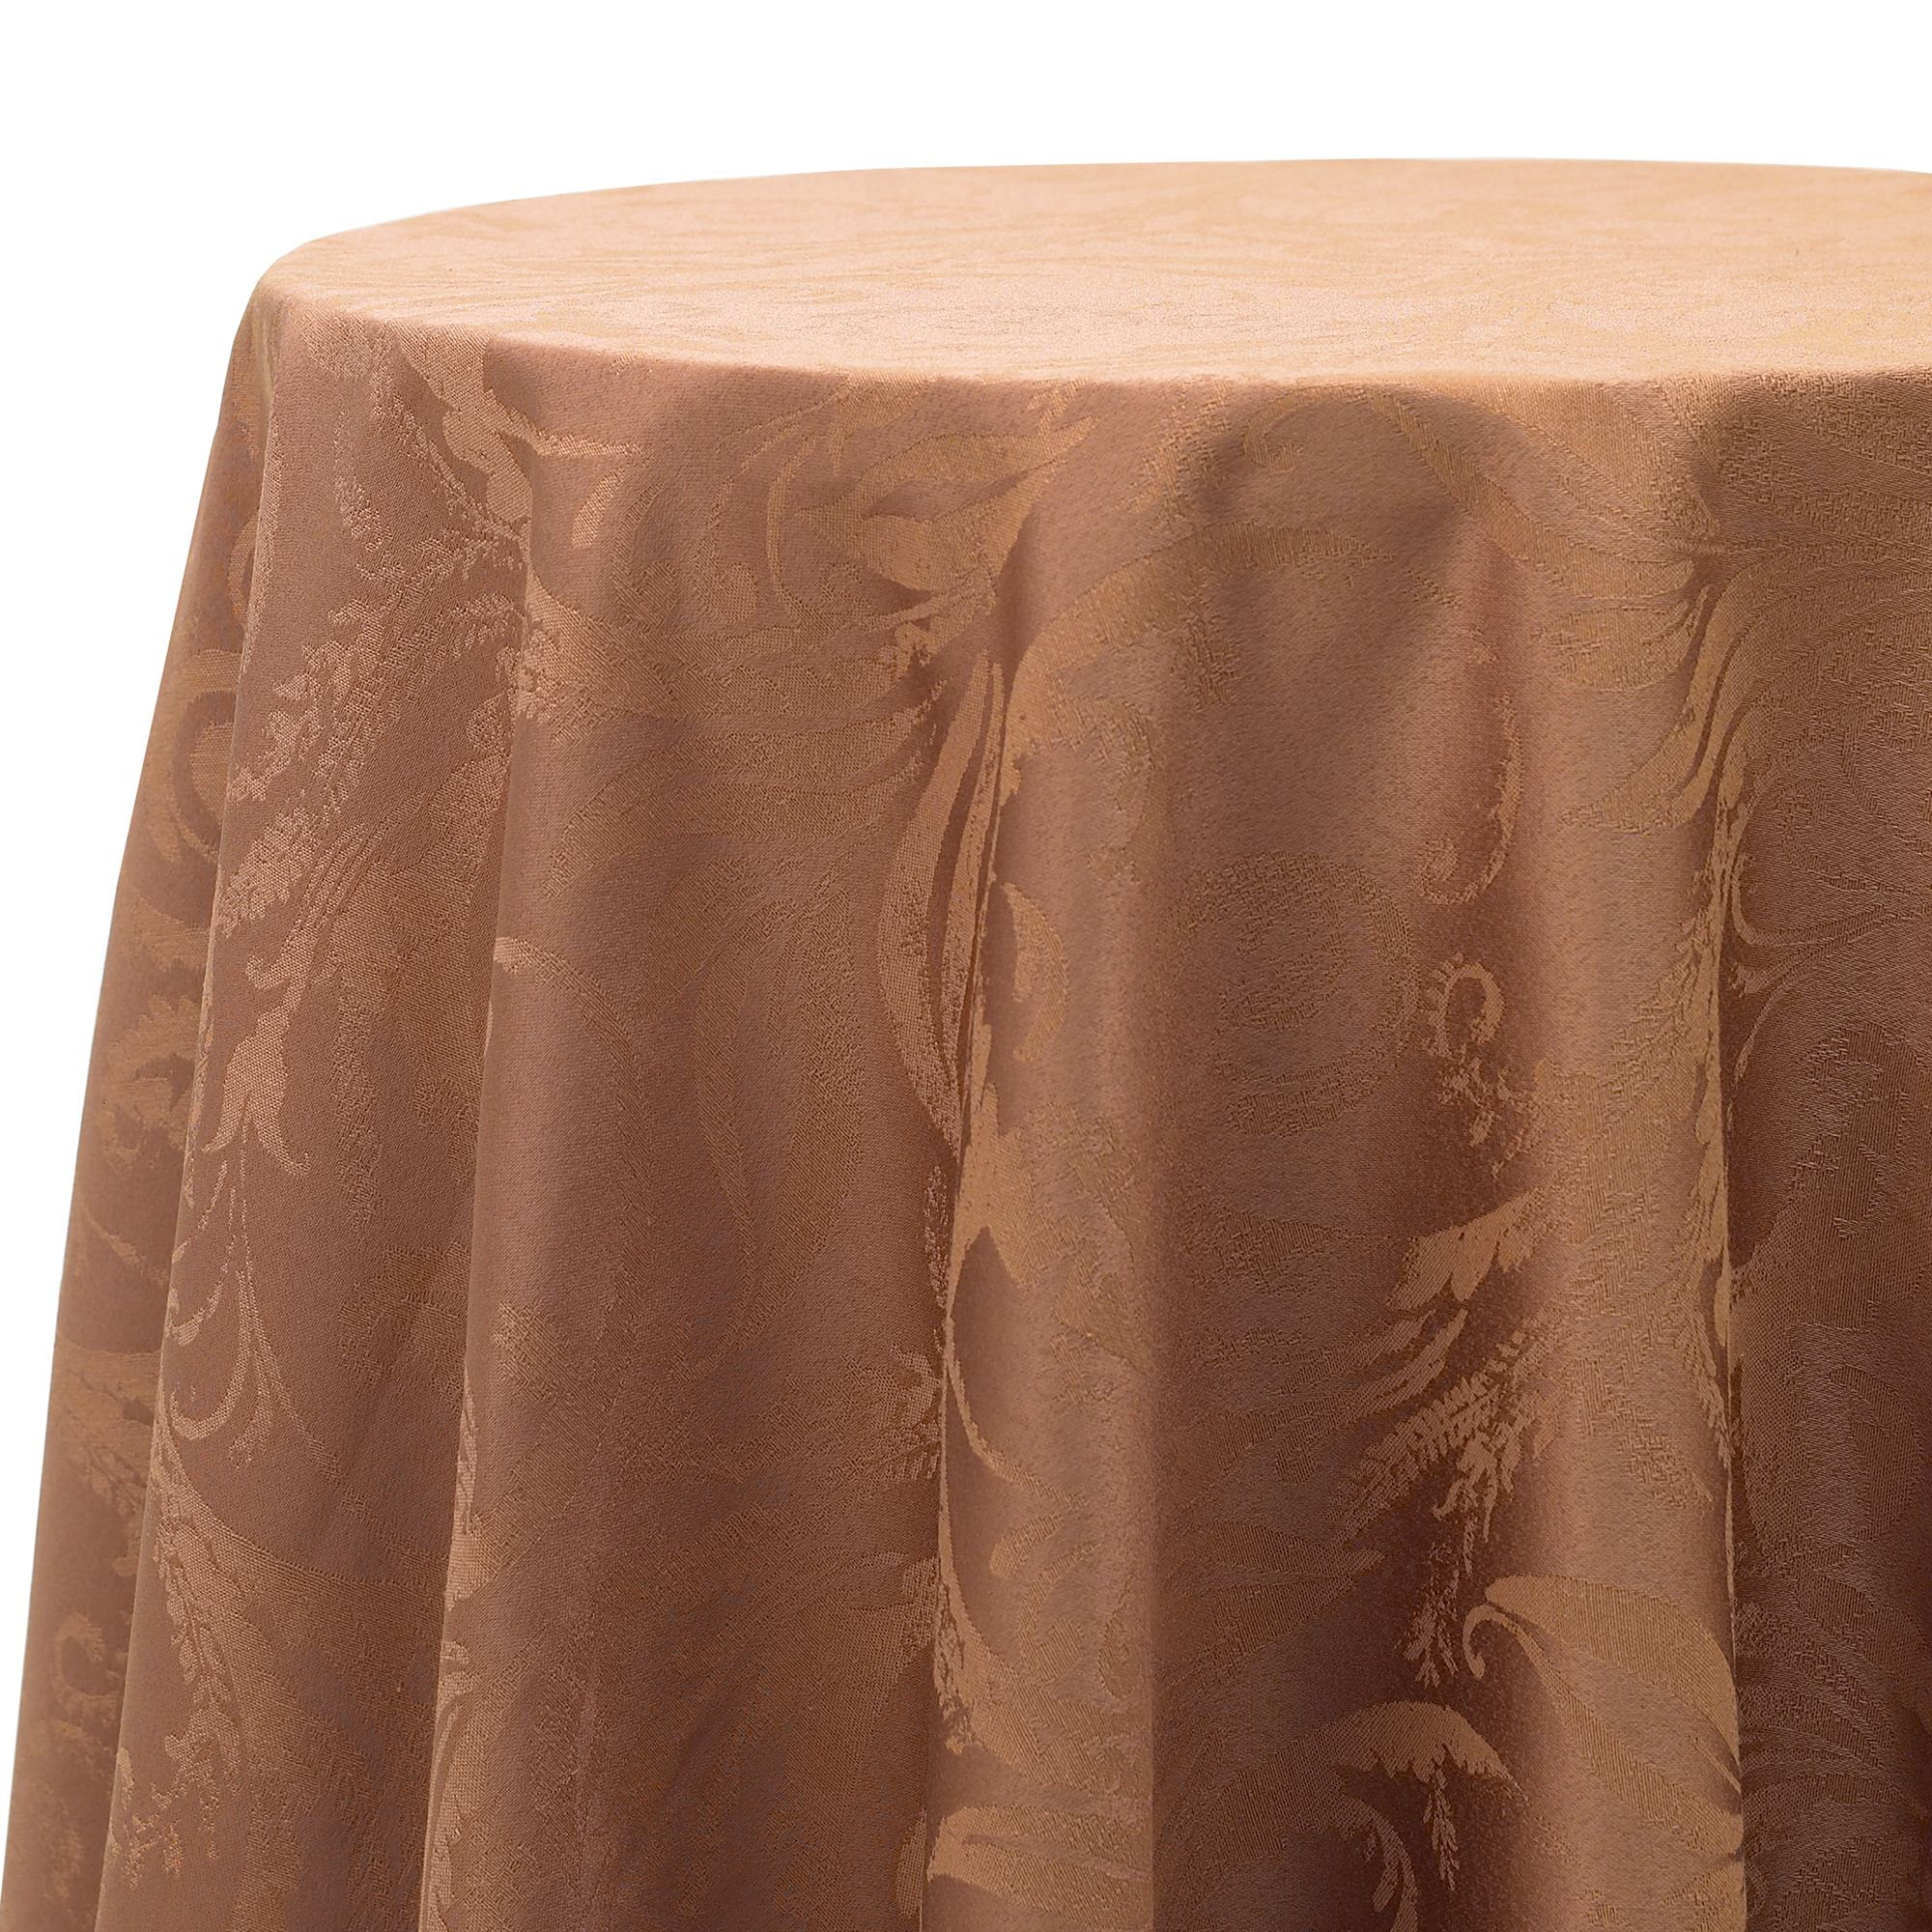 Autumn Tablecloths Round Round Tablecloth in Bronze